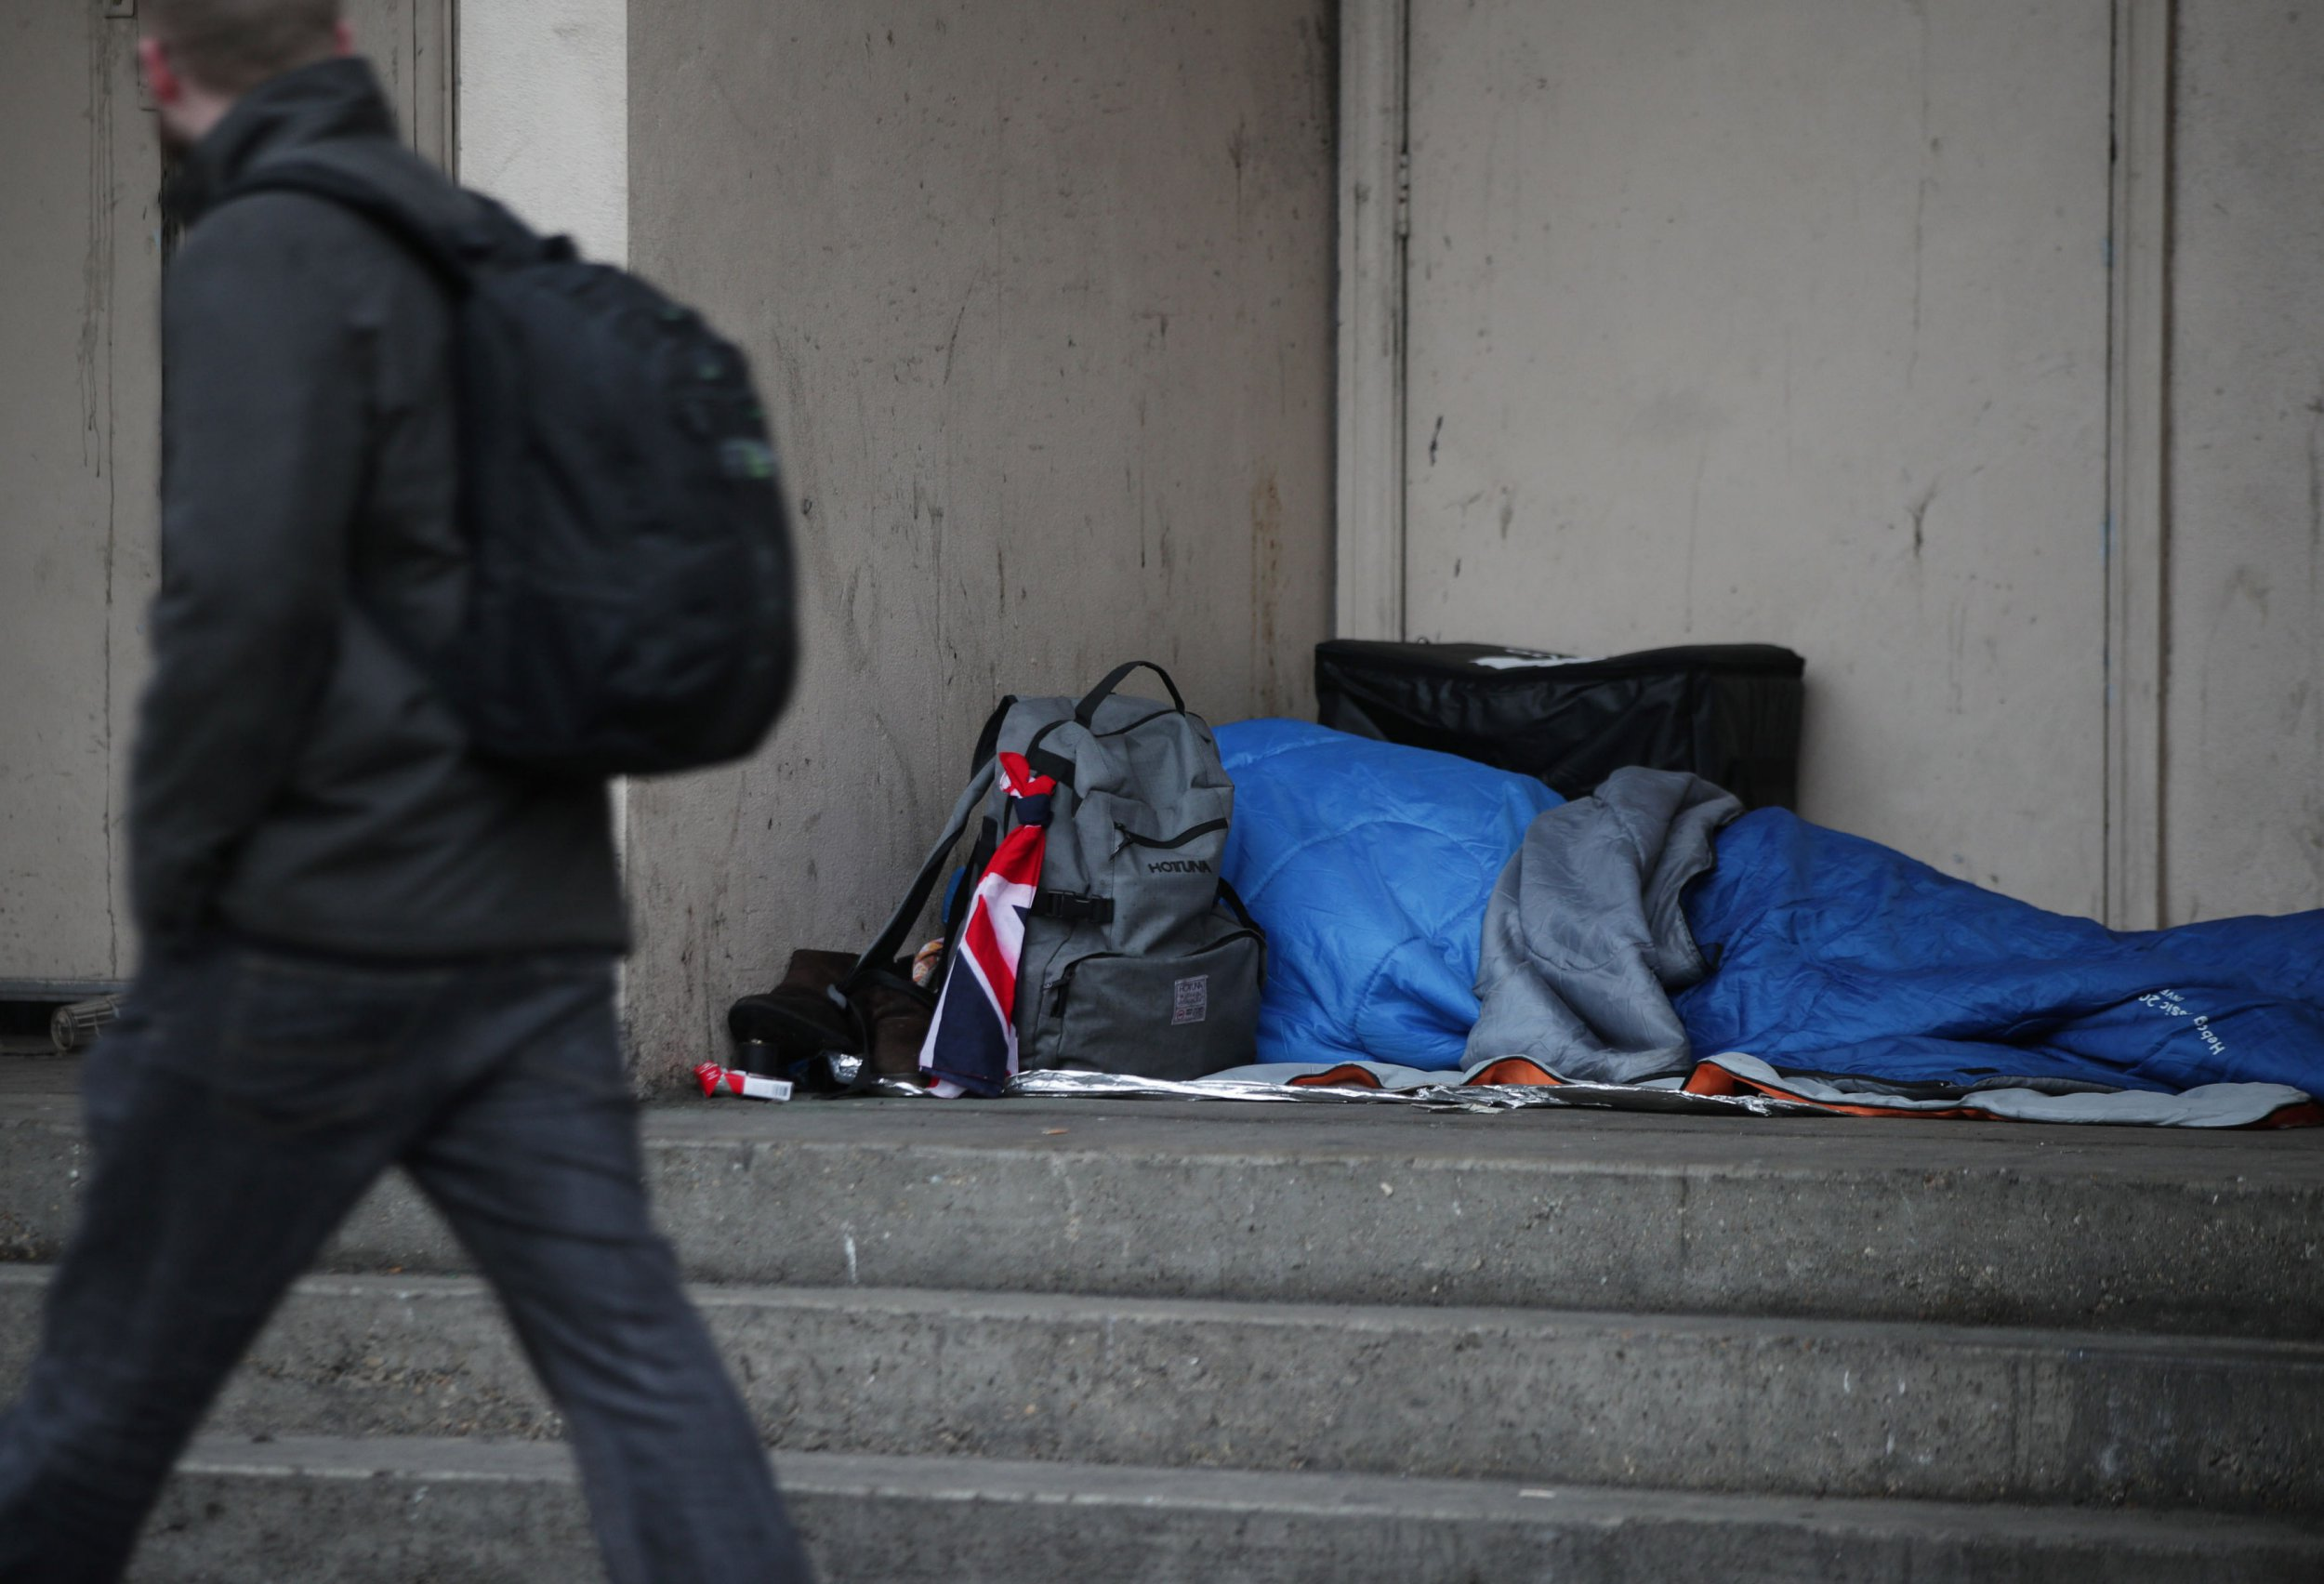 """Embargoed to 0001 Wednesday December 05 File photo dated 07/02/17 of a person sleeping rough in a doorway. Shelter has warned the UK's housing crisis will be """"felt across a generation"""" as the latest figures reveal the scale of children living in homelessness PRESS ASSOCIATION Photo. Issue date: Wednesday December 5, 2018. The charity urged the public to support its Christmas appeal which aims to provide families with """"the vital helpline advice and services they need in order to keep their homes over the festive period"""". See PA story SOCIAL Homeless. Photo credit should read: Yui Mok/PA Wire"""